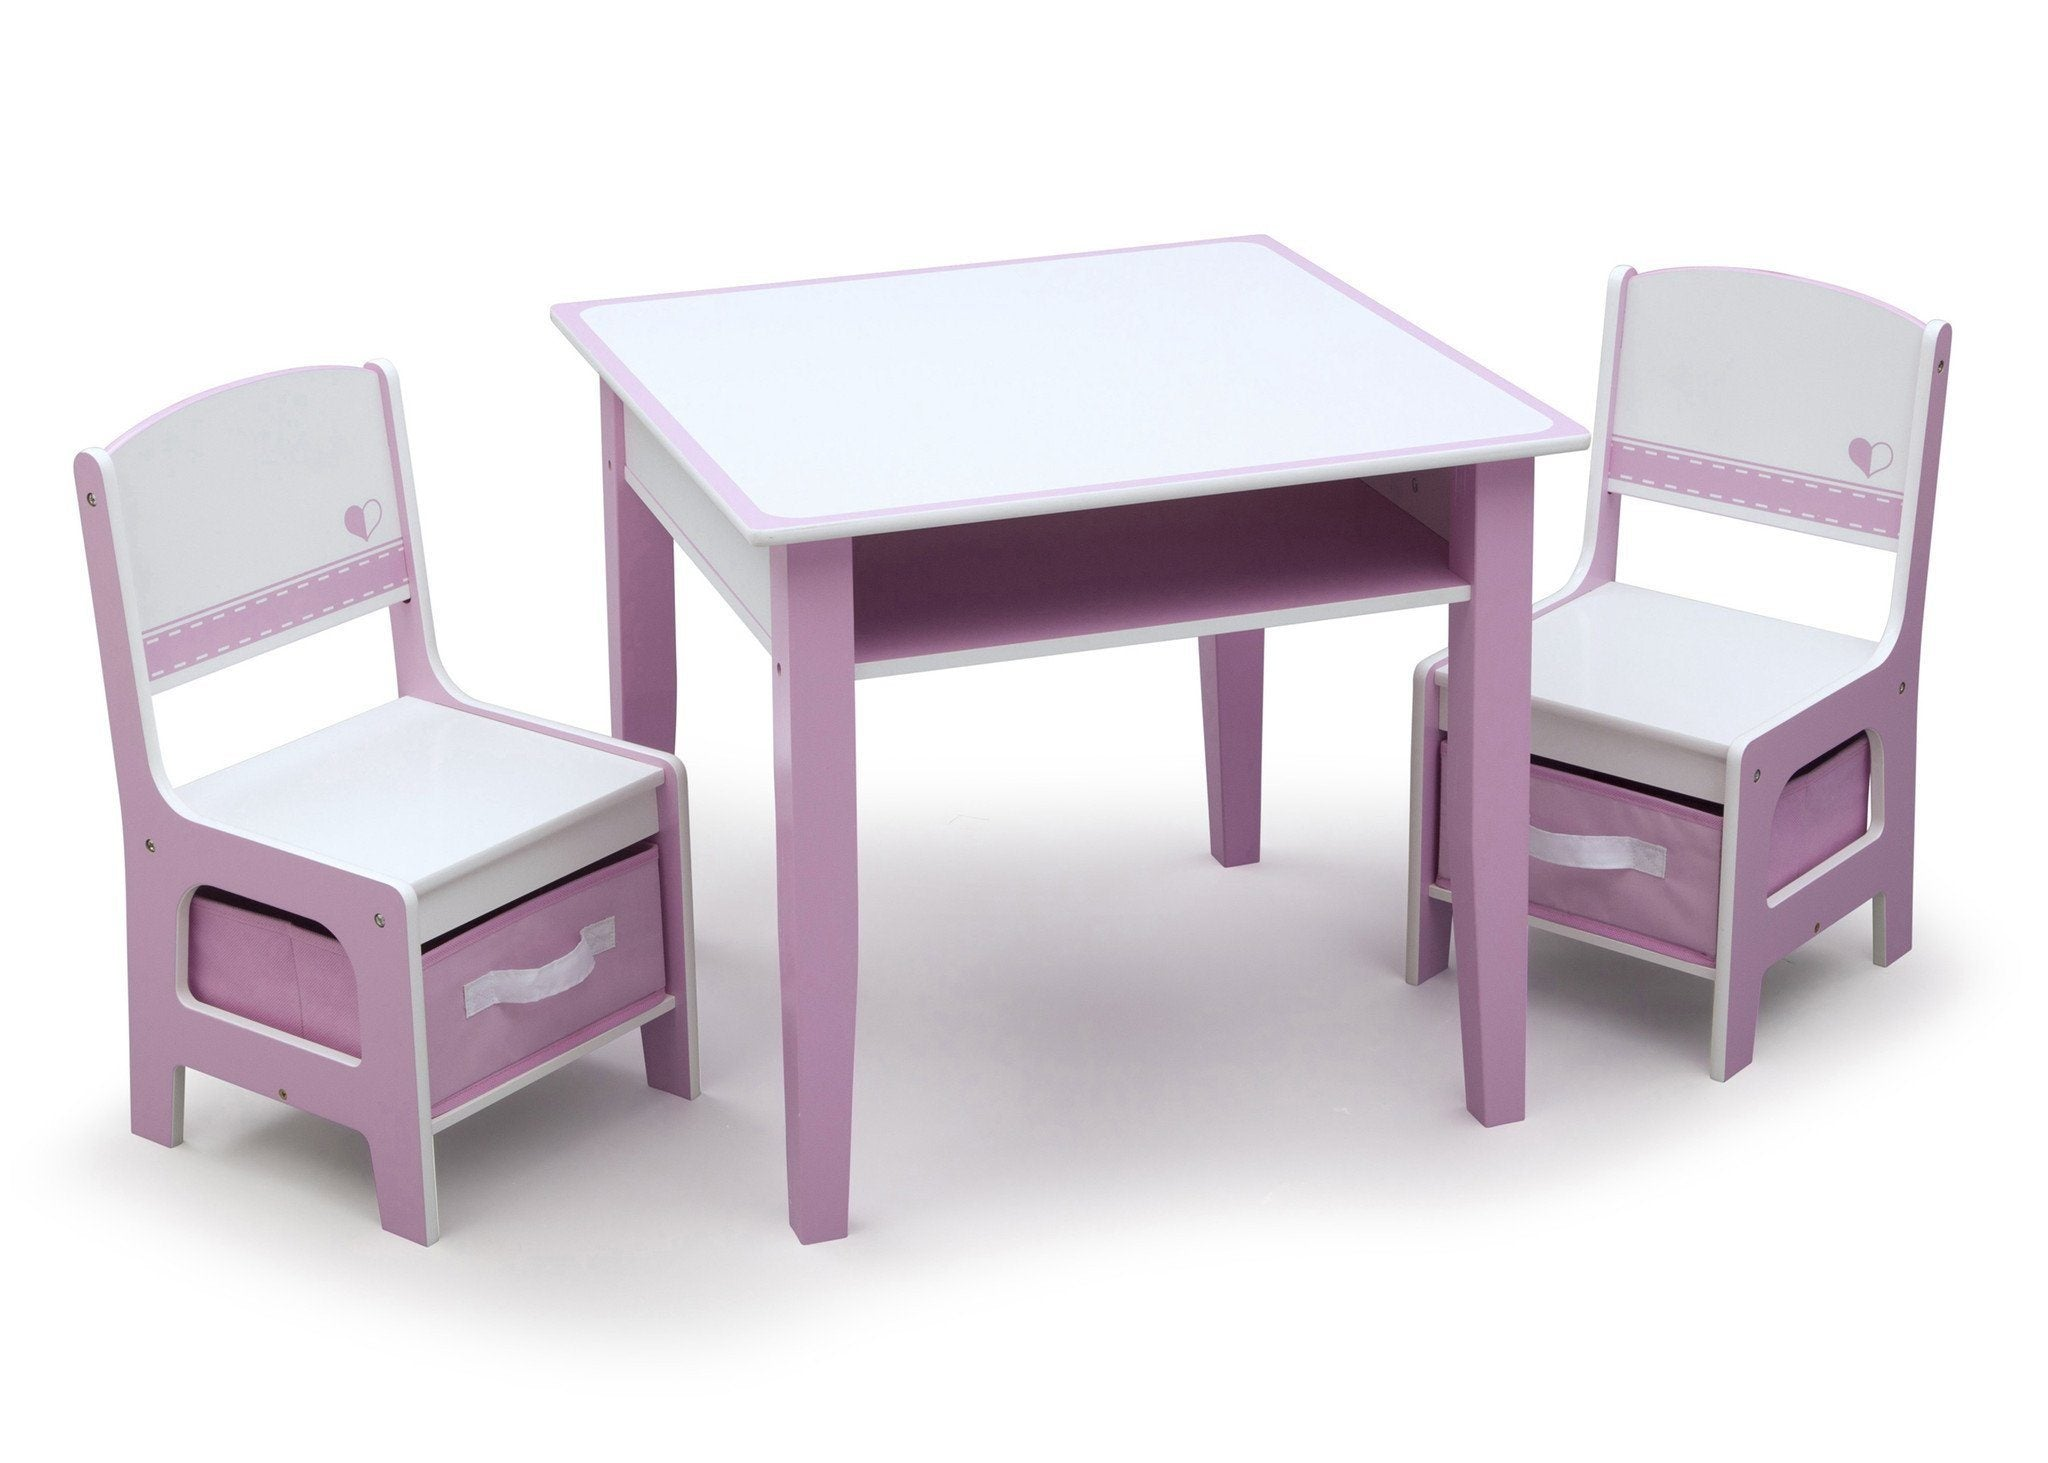 Pink and White Jack and Jill Storage Table & Chair Set Style 1, Right View a2a